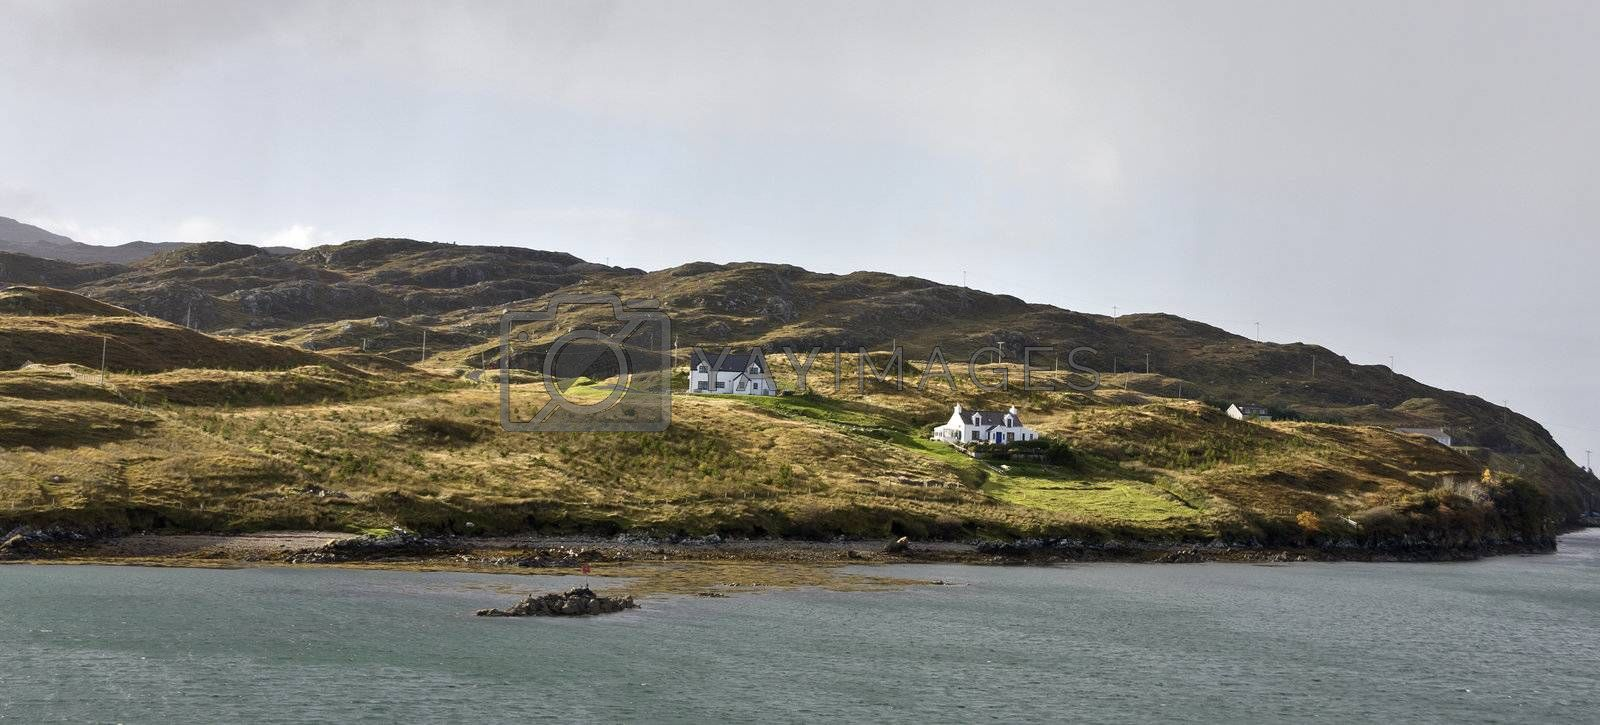 two remote houses at coastline in scotland.